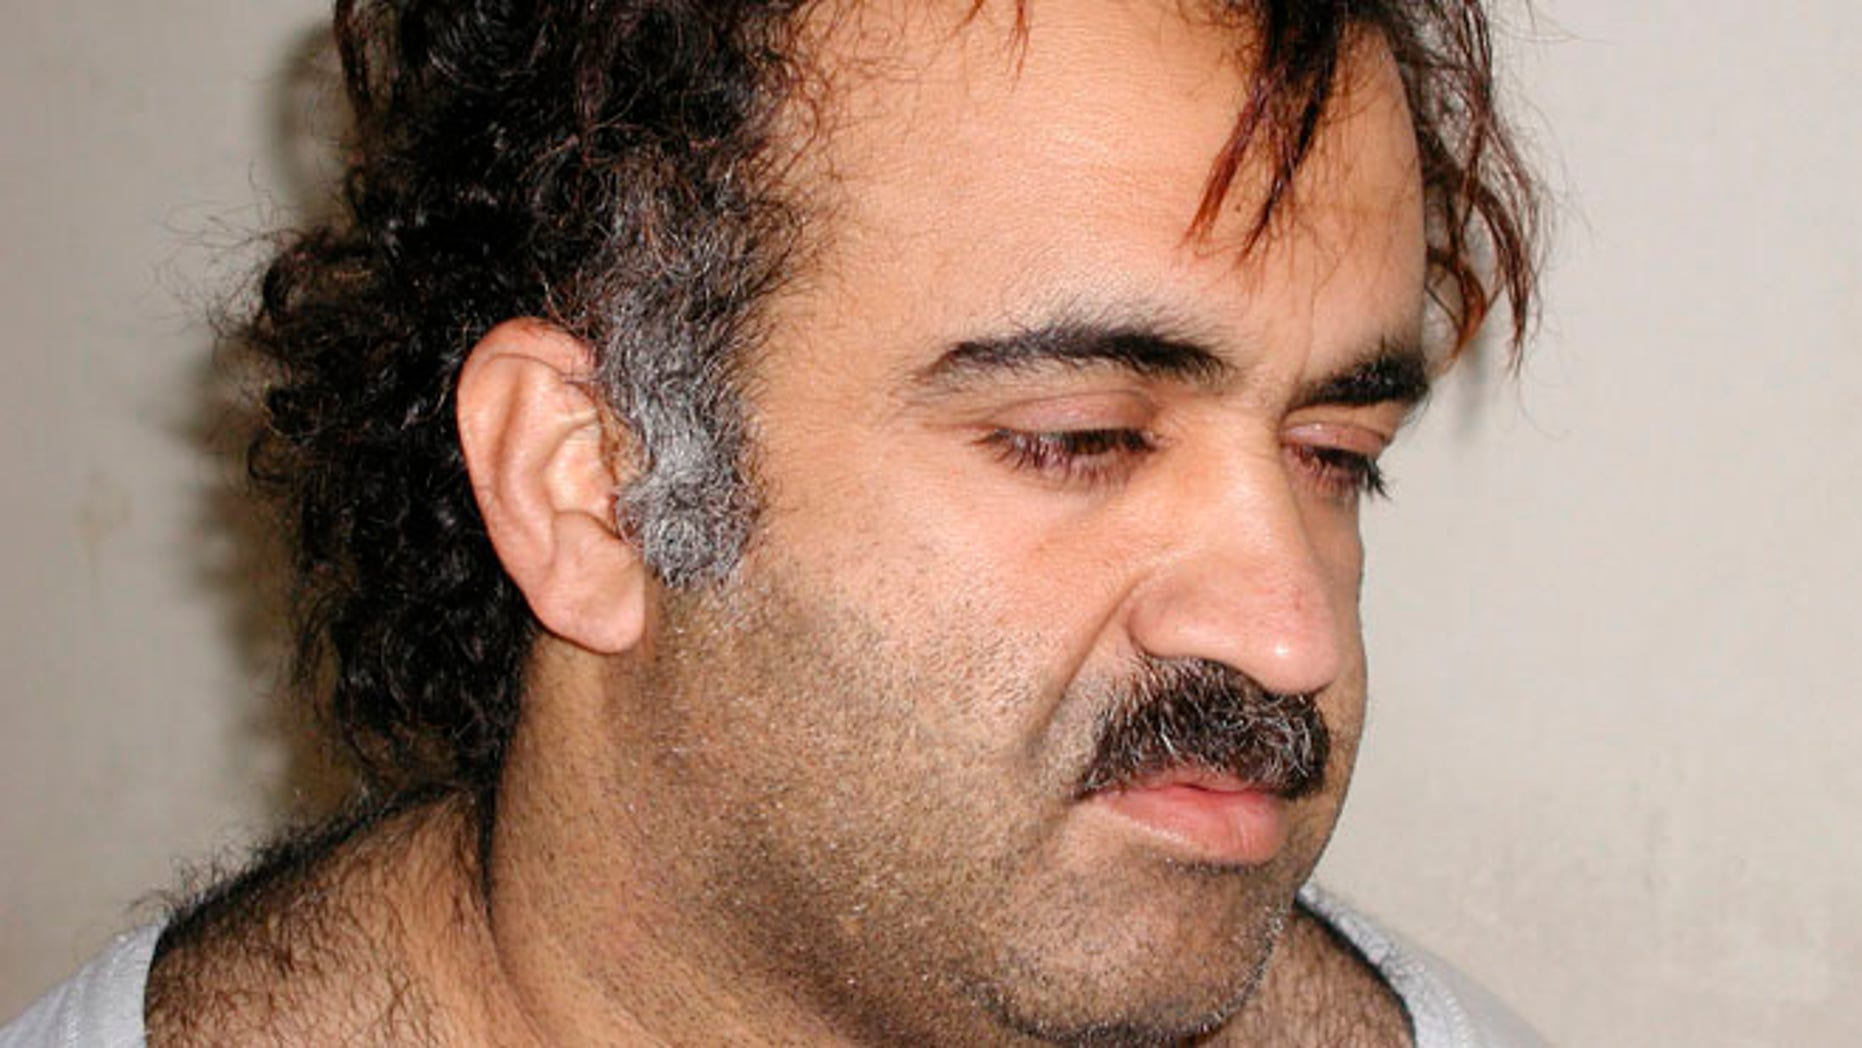 Khalid Sheikh Mohammed is shown in this file photograph during his arrest on March 1, 2003.